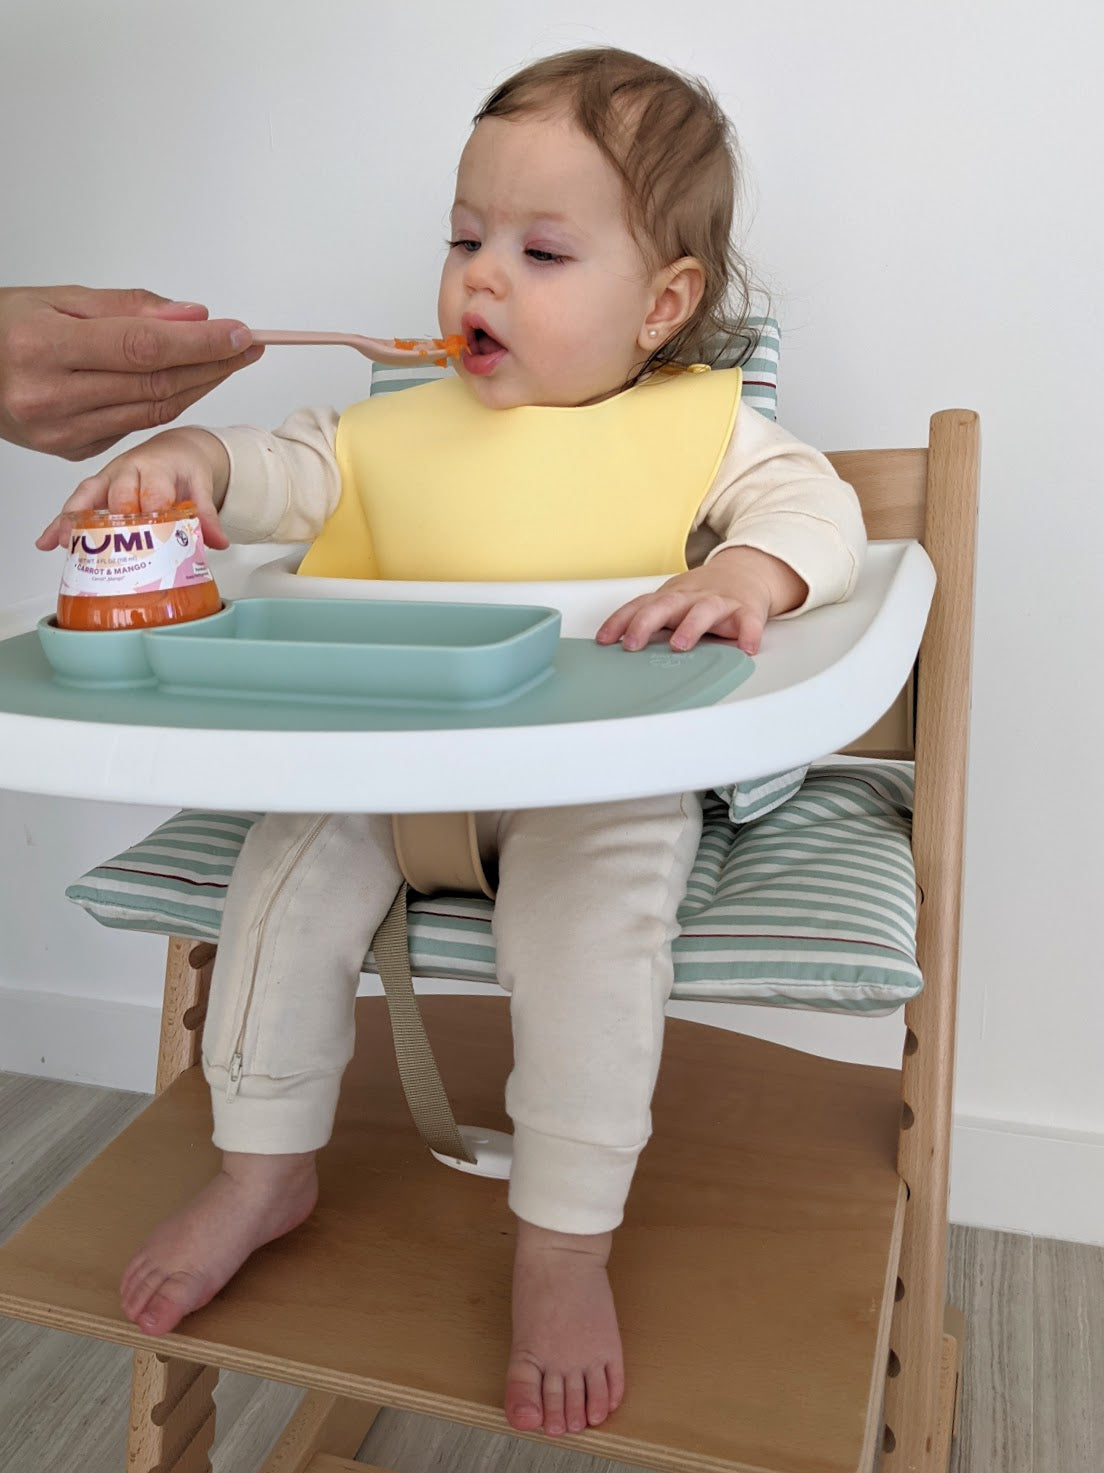 TØY Yumi - Organic Baby Clothes and food